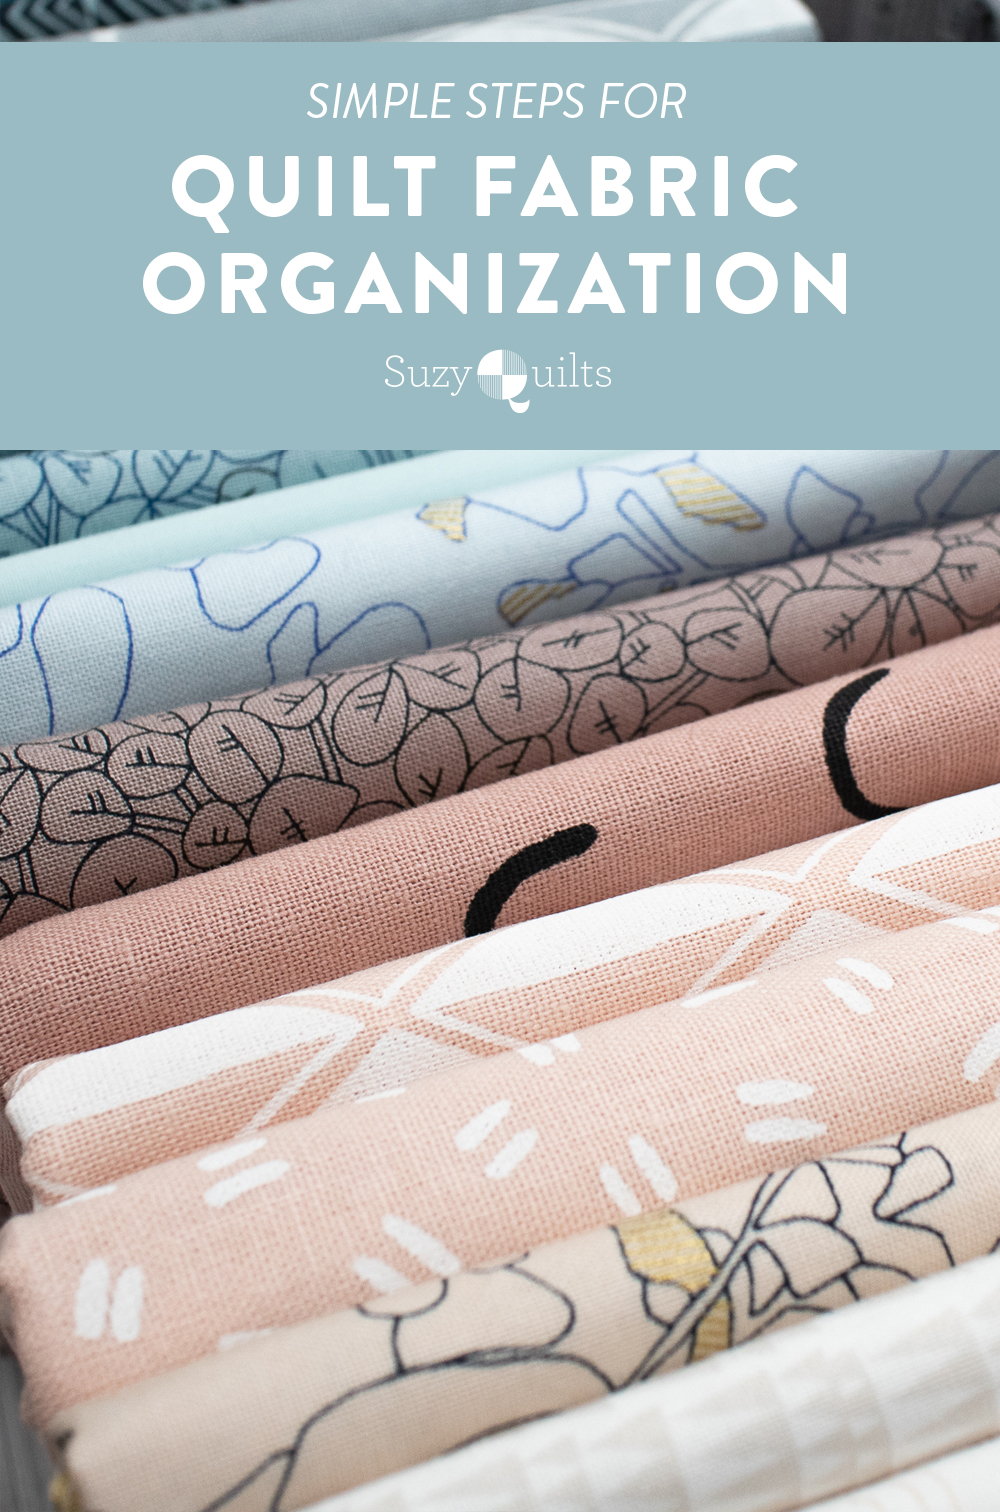 Simple steps for quilting fabric organization that can be easily adapted to your unique sewing room and fabric stash. Follow these steps with photo examples, links to resources and supplies, and tips to start organizing your fabric stash today. suzyquilts.com #sewingdiy #quilting